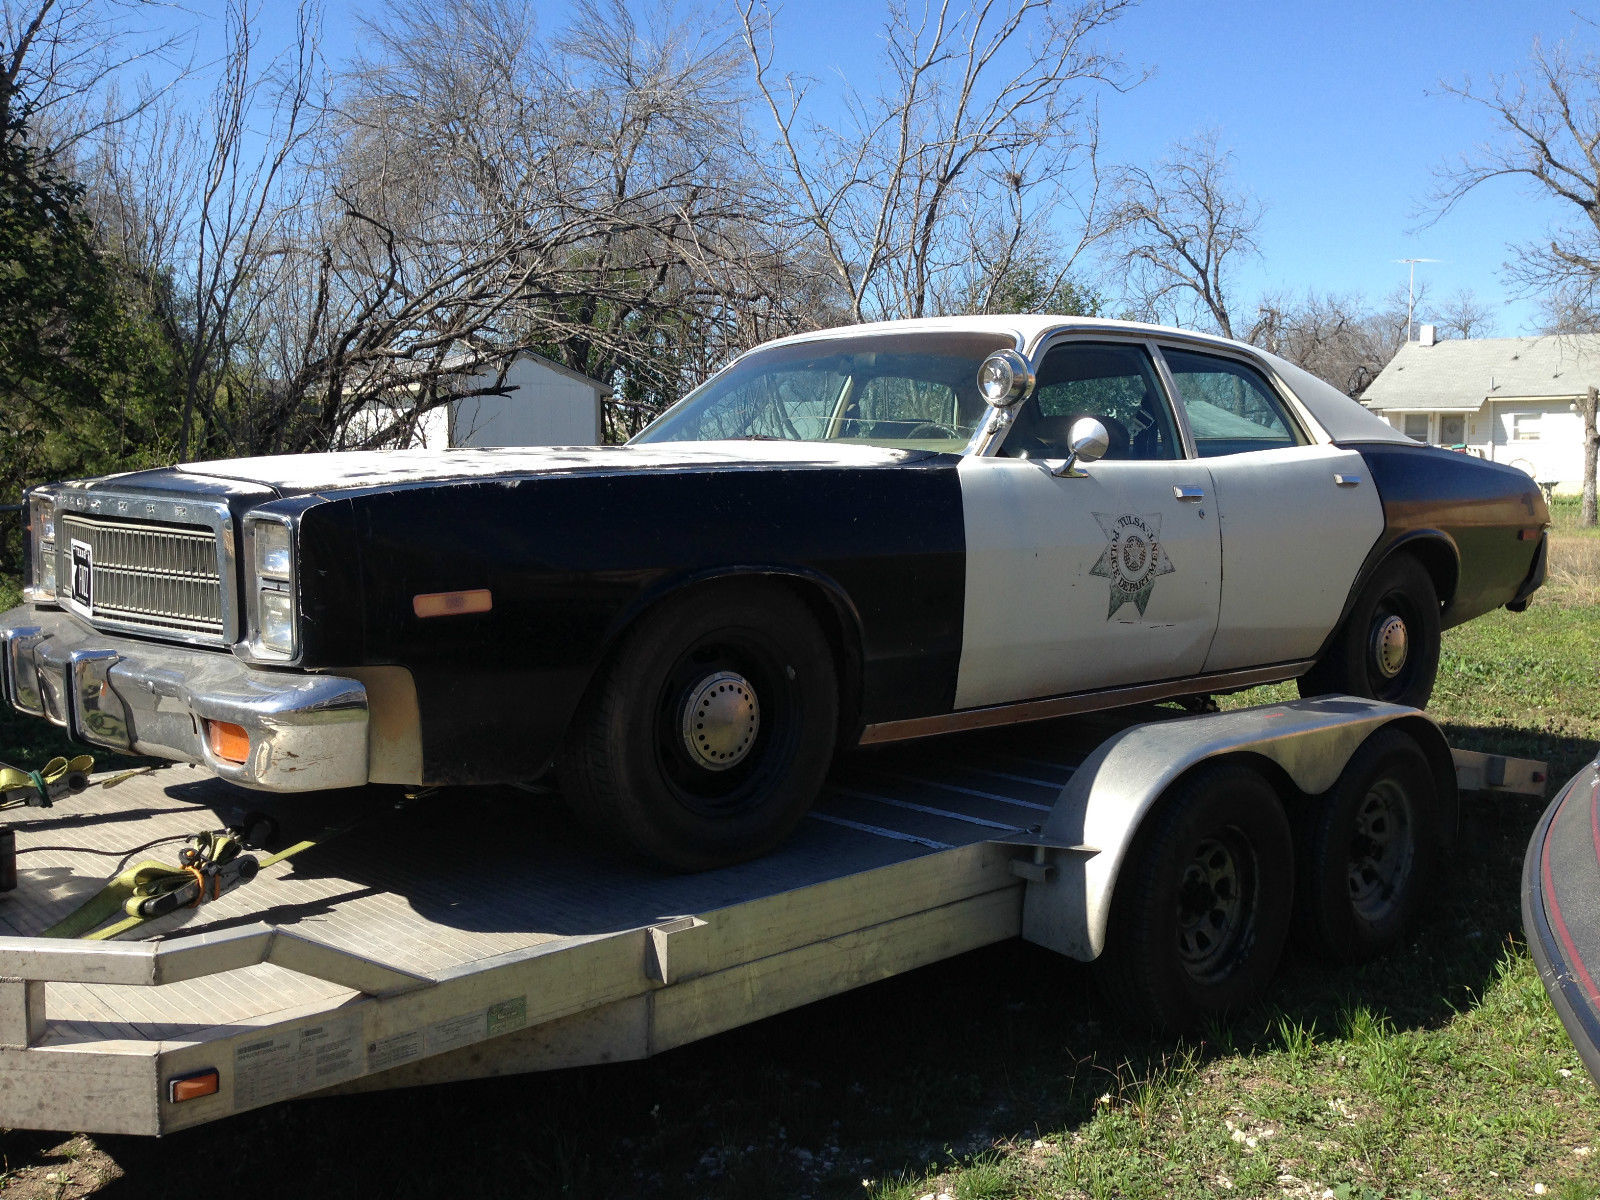 1978 plymouth fury police car original tulsa police car survivor very rare for sale in san. Black Bedroom Furniture Sets. Home Design Ideas